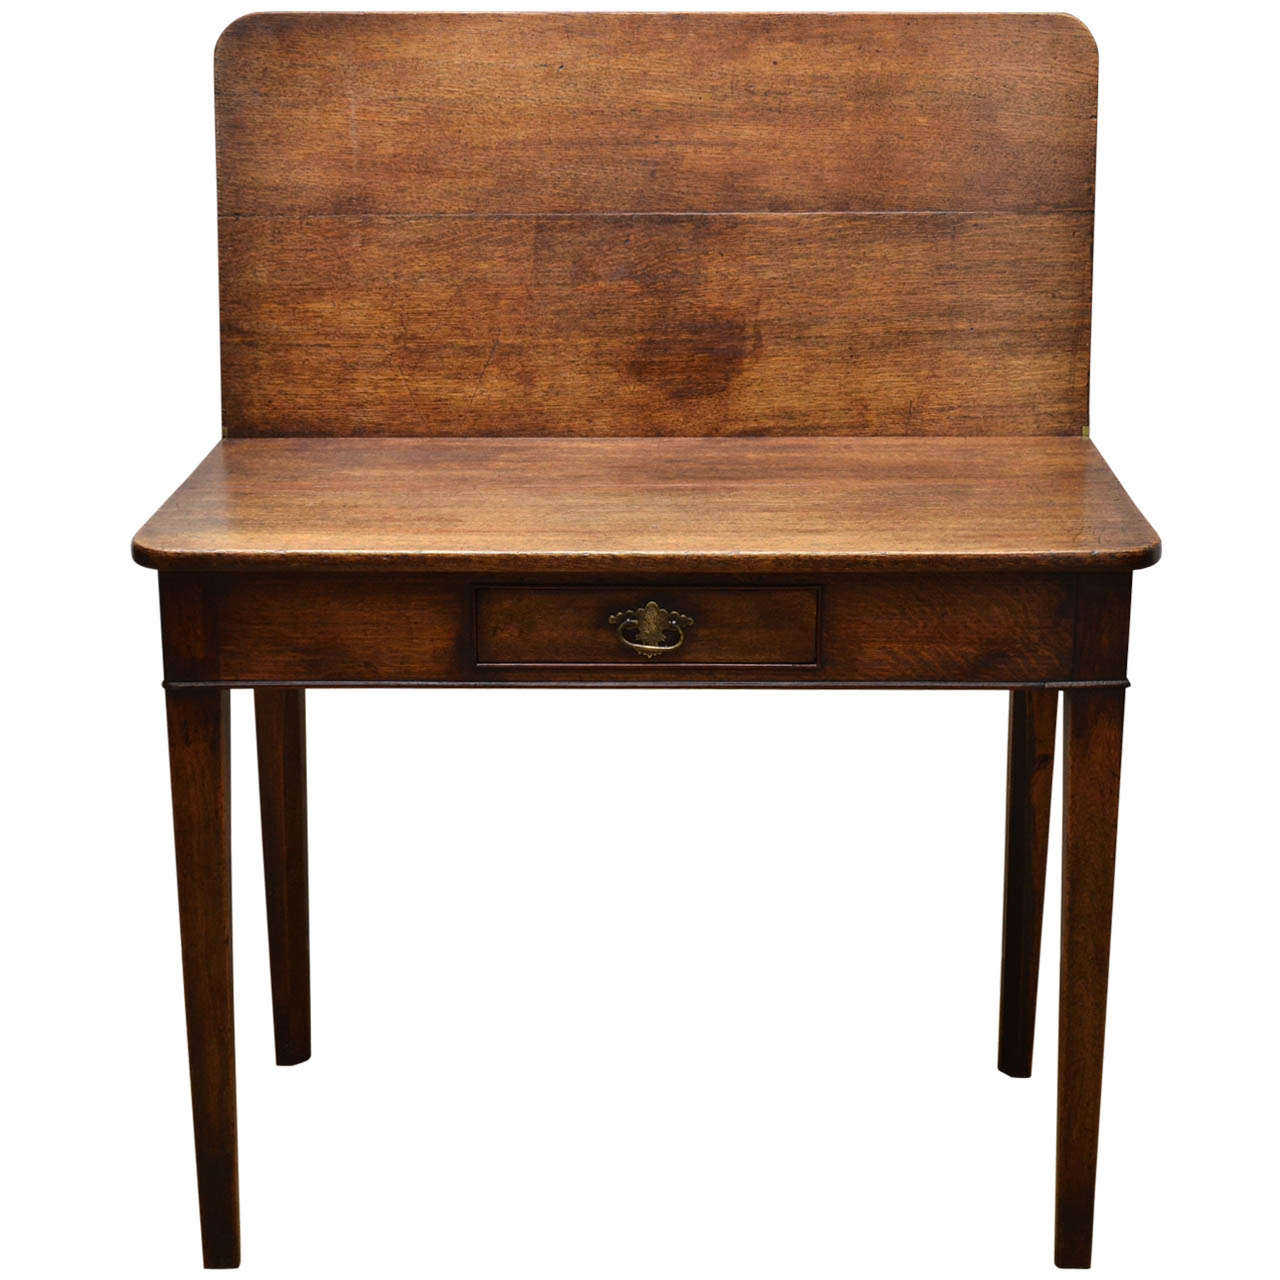 19th century gateleg folding tea table for sale at 1stdibs - Gateleg table with folding chairs ...